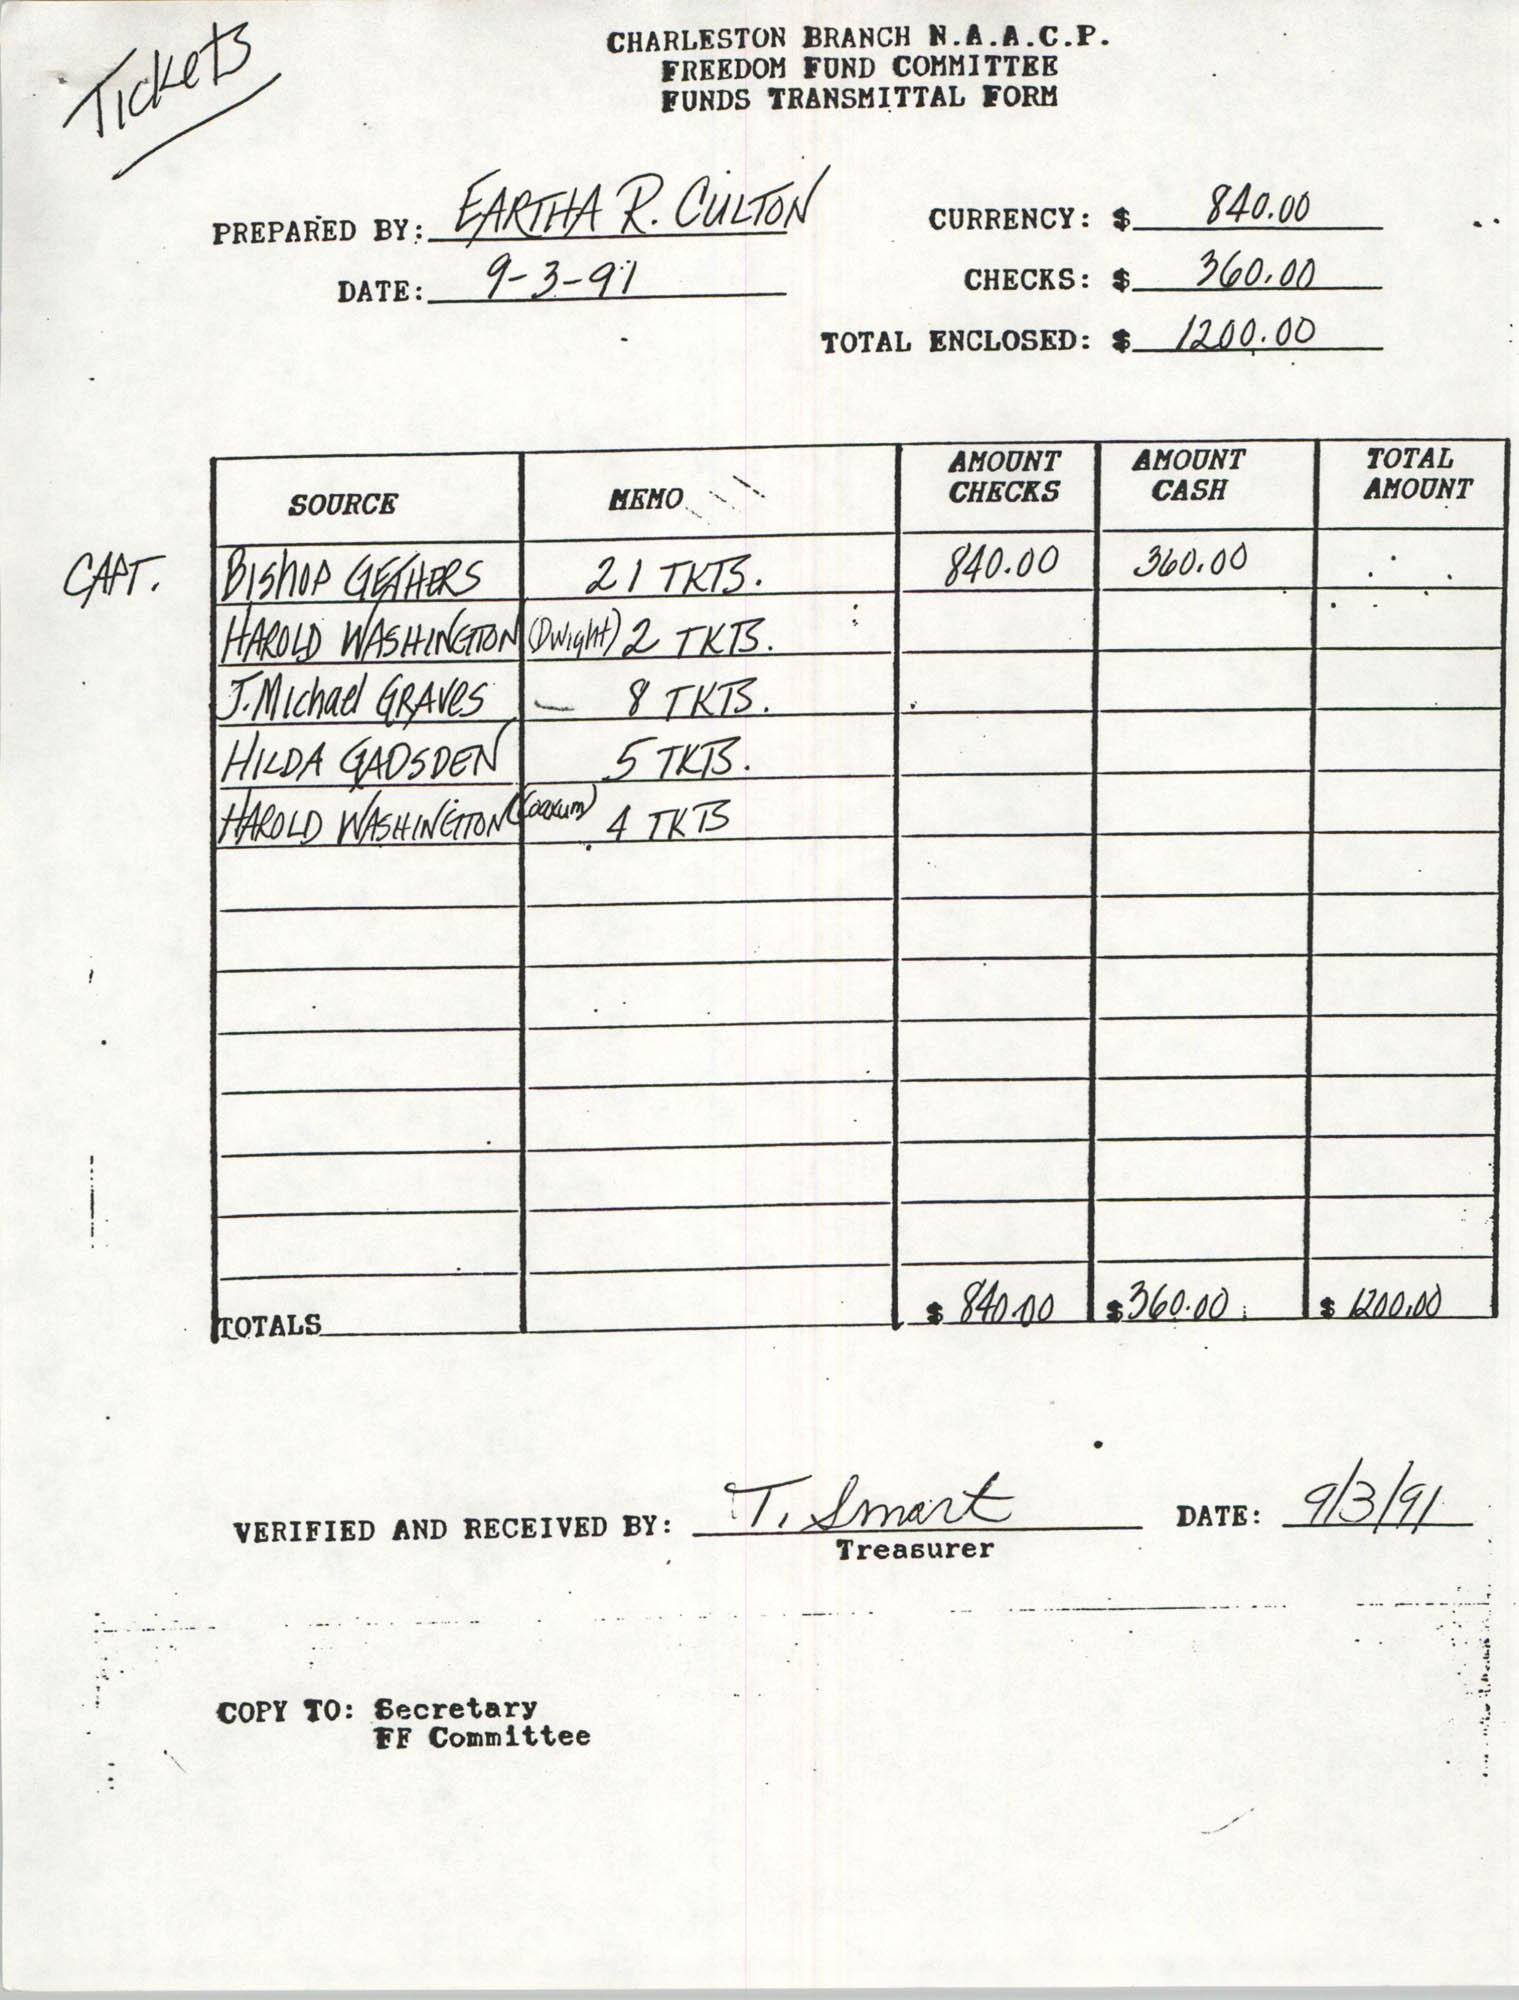 Charleston Branch of the NAACP Funds Transmittal Forms, September 1991, Page 6